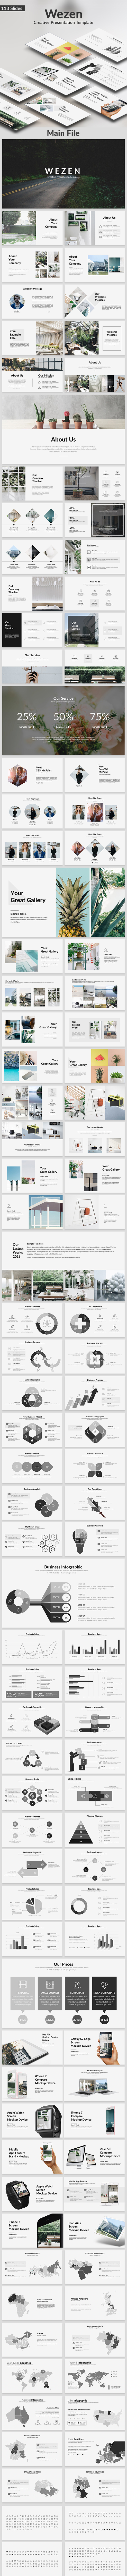 Wezen - Creative Keynote Template - Creative Keynote Templates